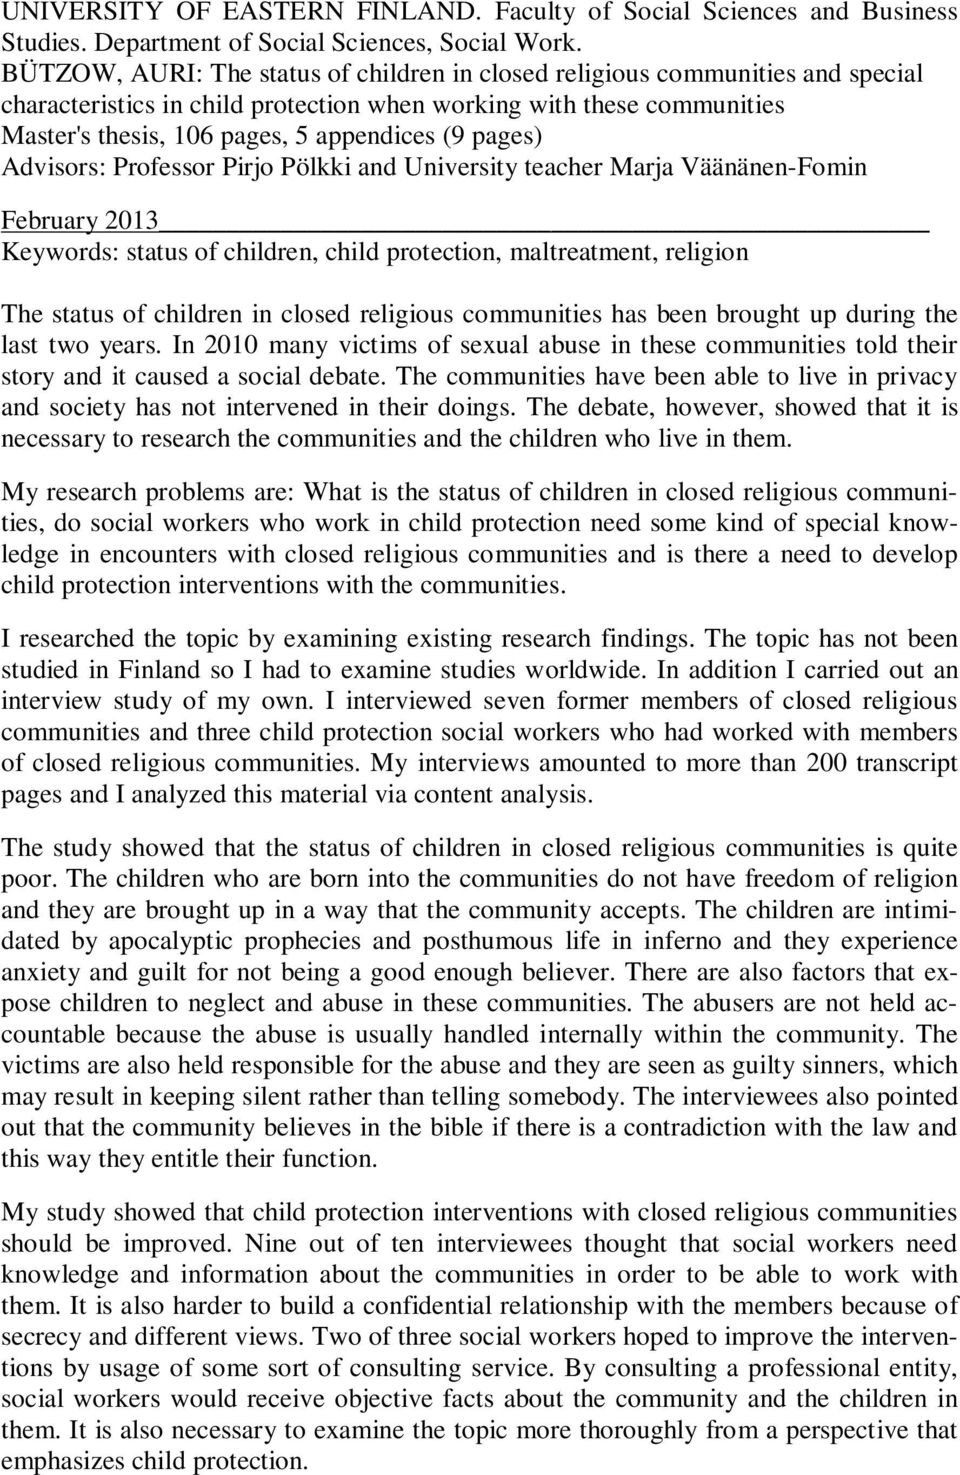 pages) Advisors: Professor Pirjo Pölkki and University teacher Marja Väänänen-Fomin February 2013 Keywords: status of children, child protection, maltreatment, religion The status of children in